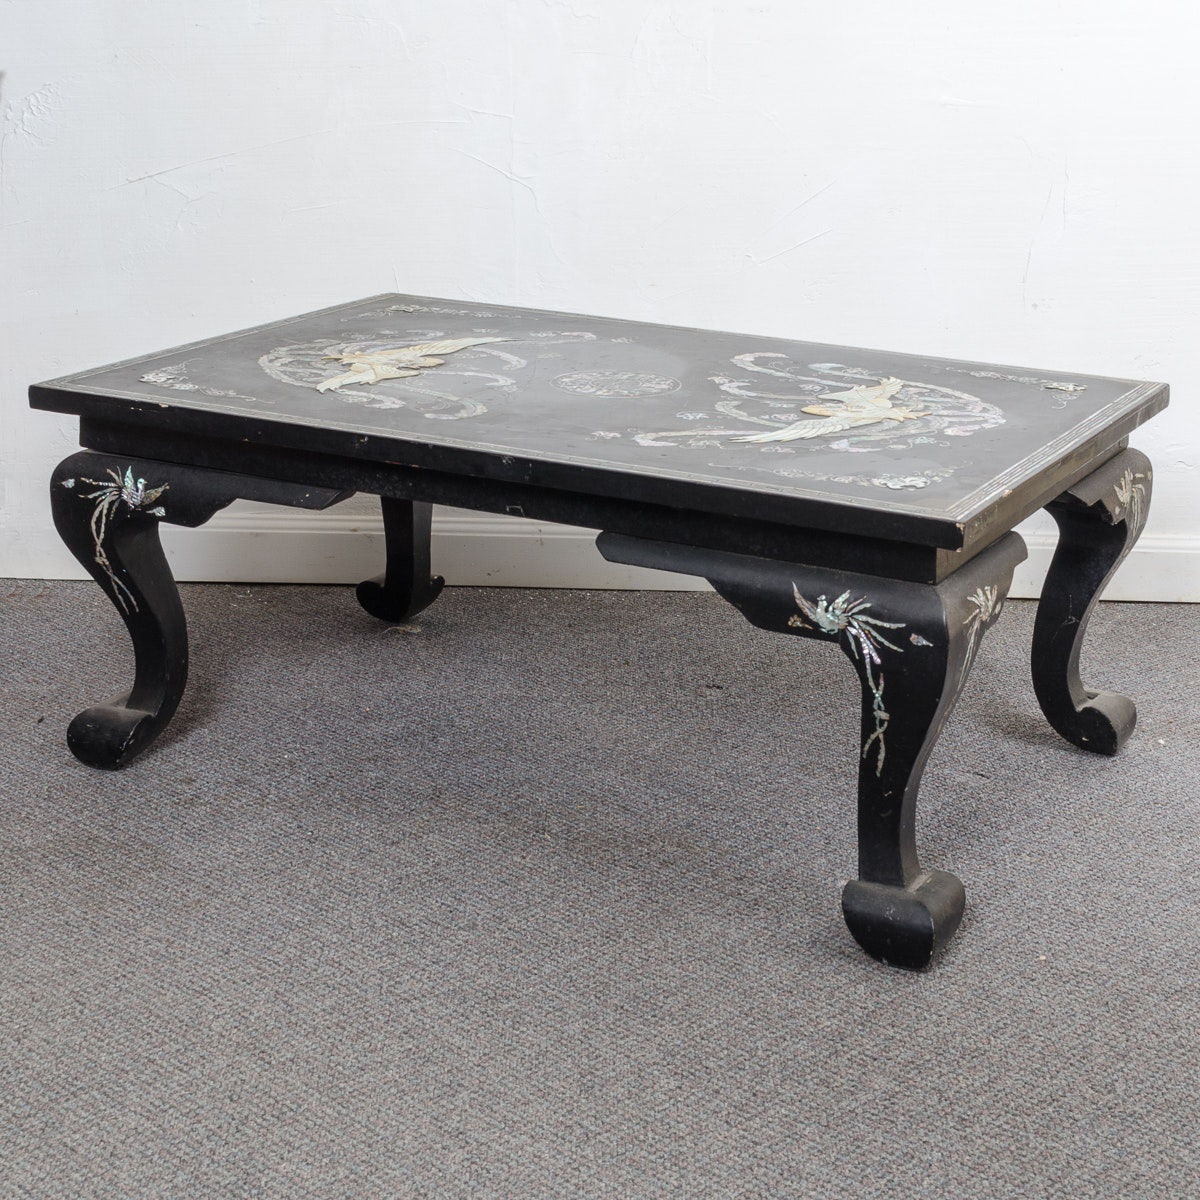 Black Lacquer Chinese Coffee Table with Abalone Inlay